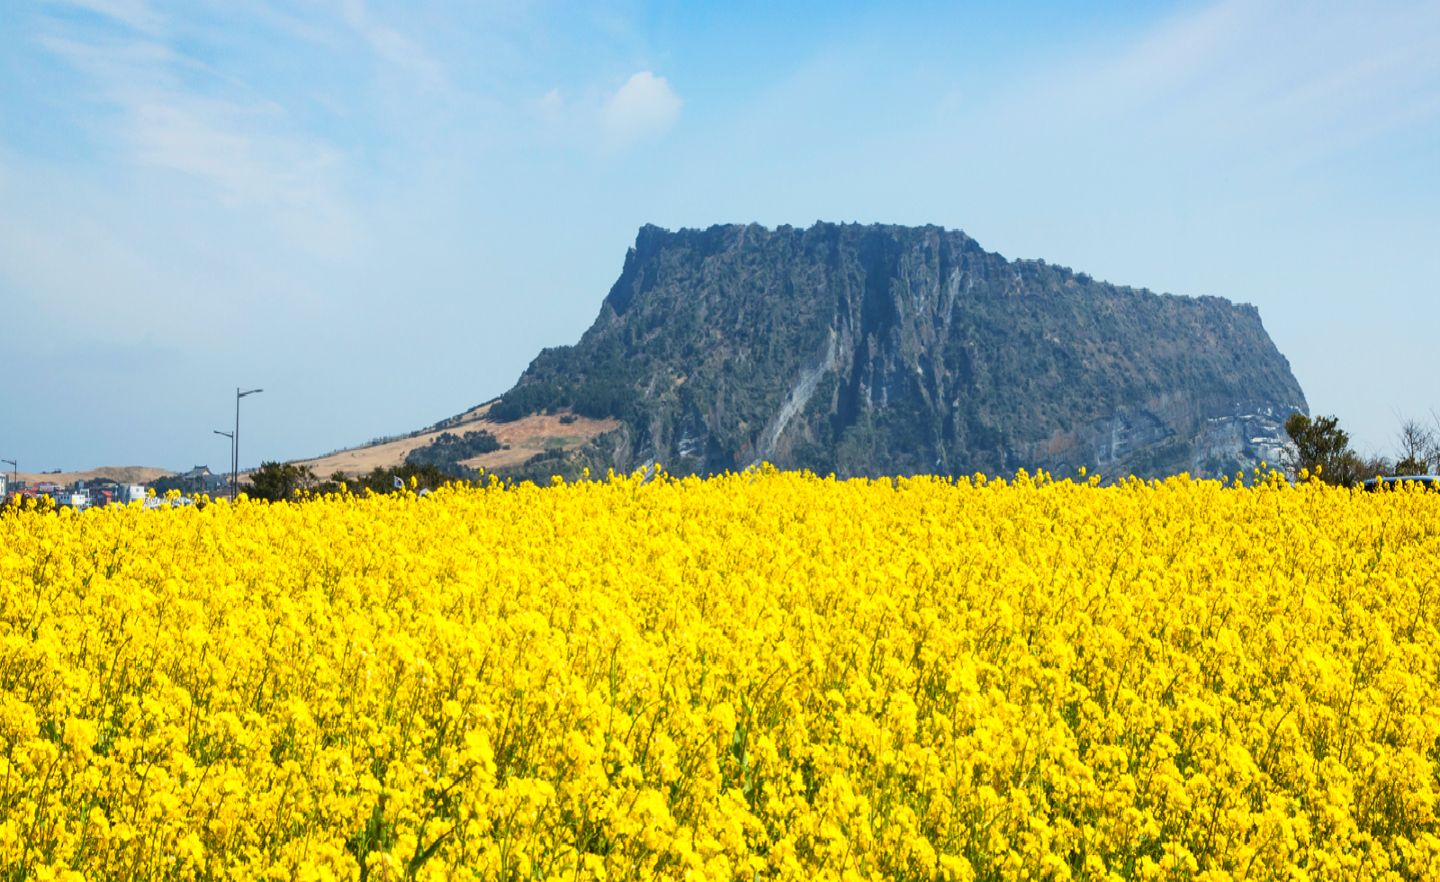 2018 Visit Korea: Enjoy your holiday on Jeju Island, South Korea